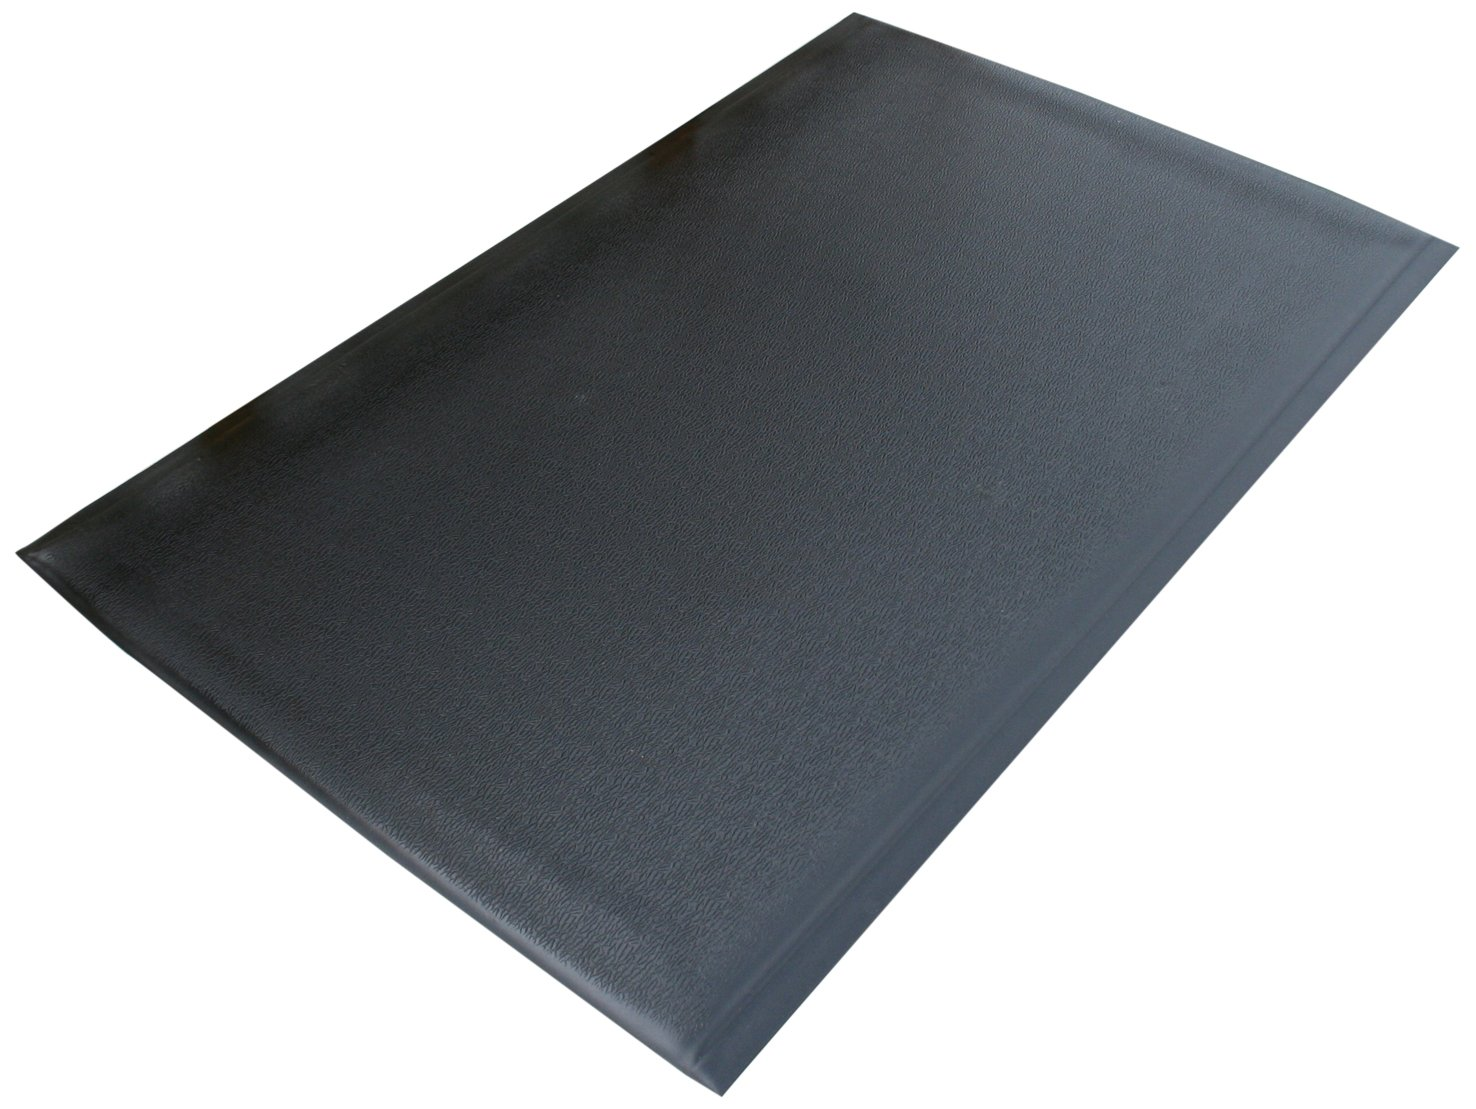 Rhino Mats DS-3696 Dura Step Anti-Fatigue Mat, 3' Width x 8' Length x 1/2'' Thickness, Black by Rhino Mats